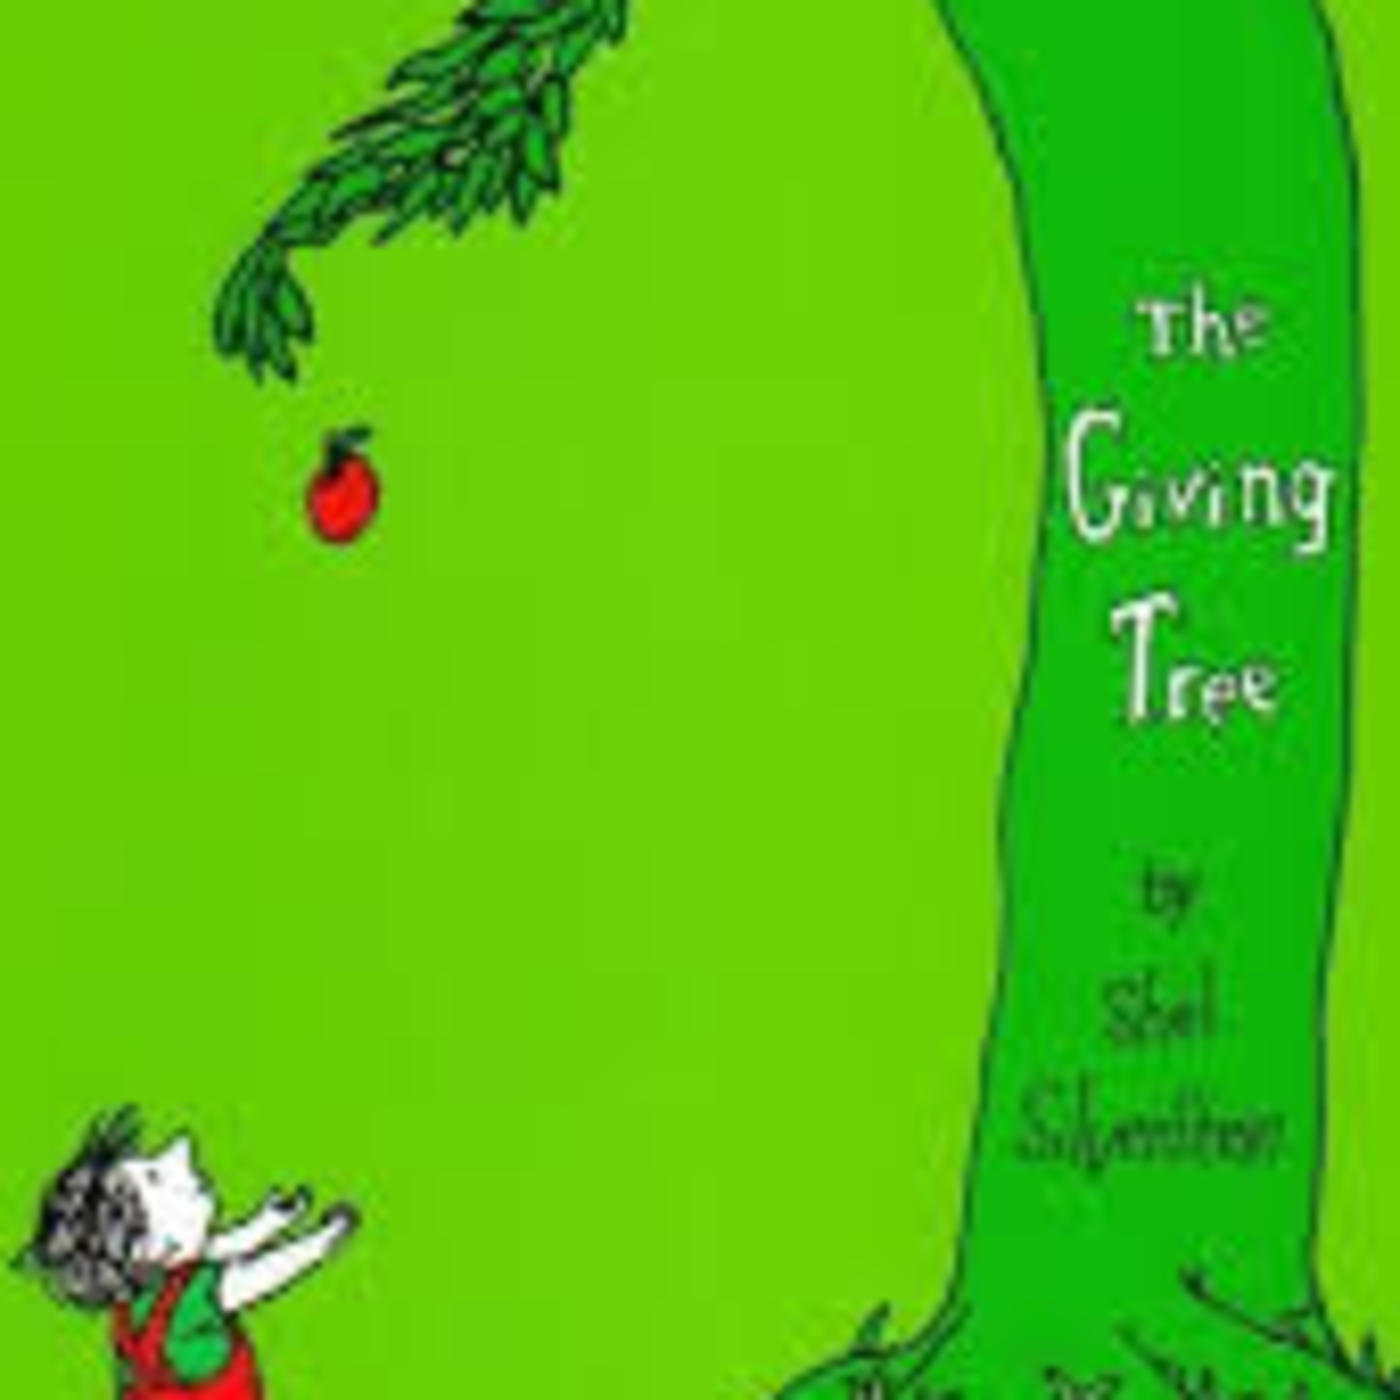 Colin Purrington - nature photography / natural history The giving tree pdf with pictures